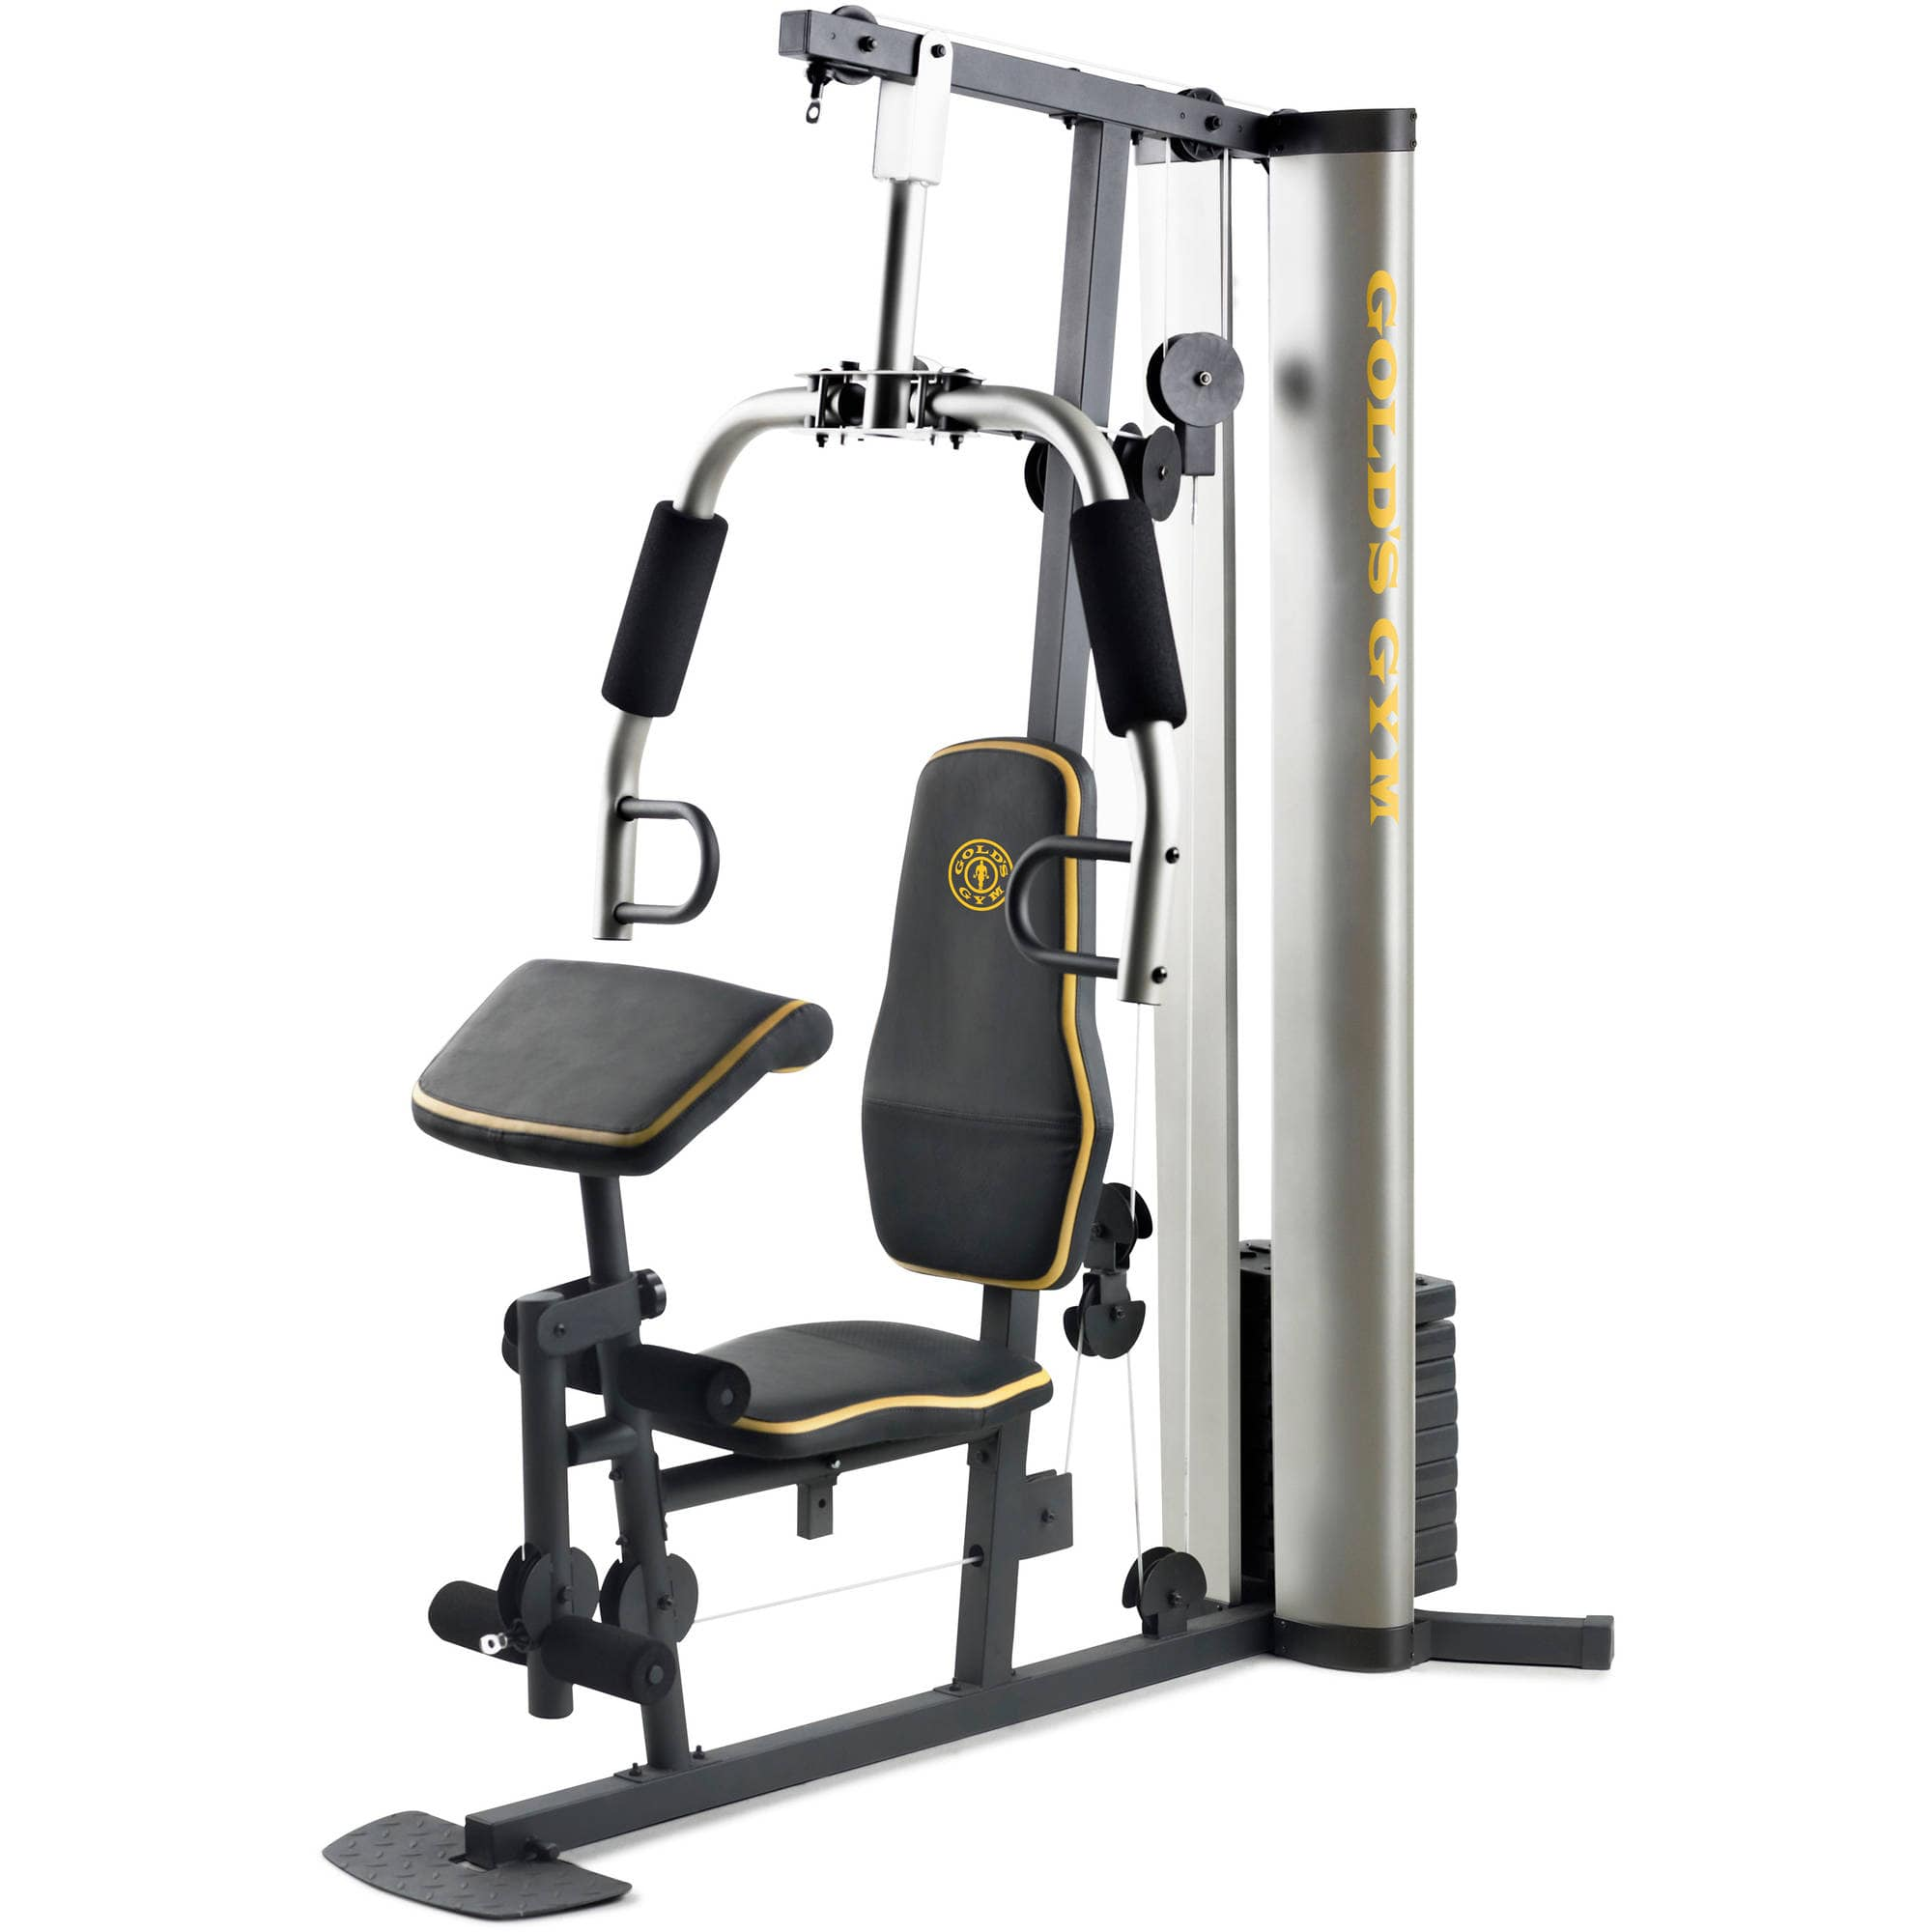 Walmart - Gold's Gym XR 55 Home Gym with 330 Lbs of Resistance $249.99